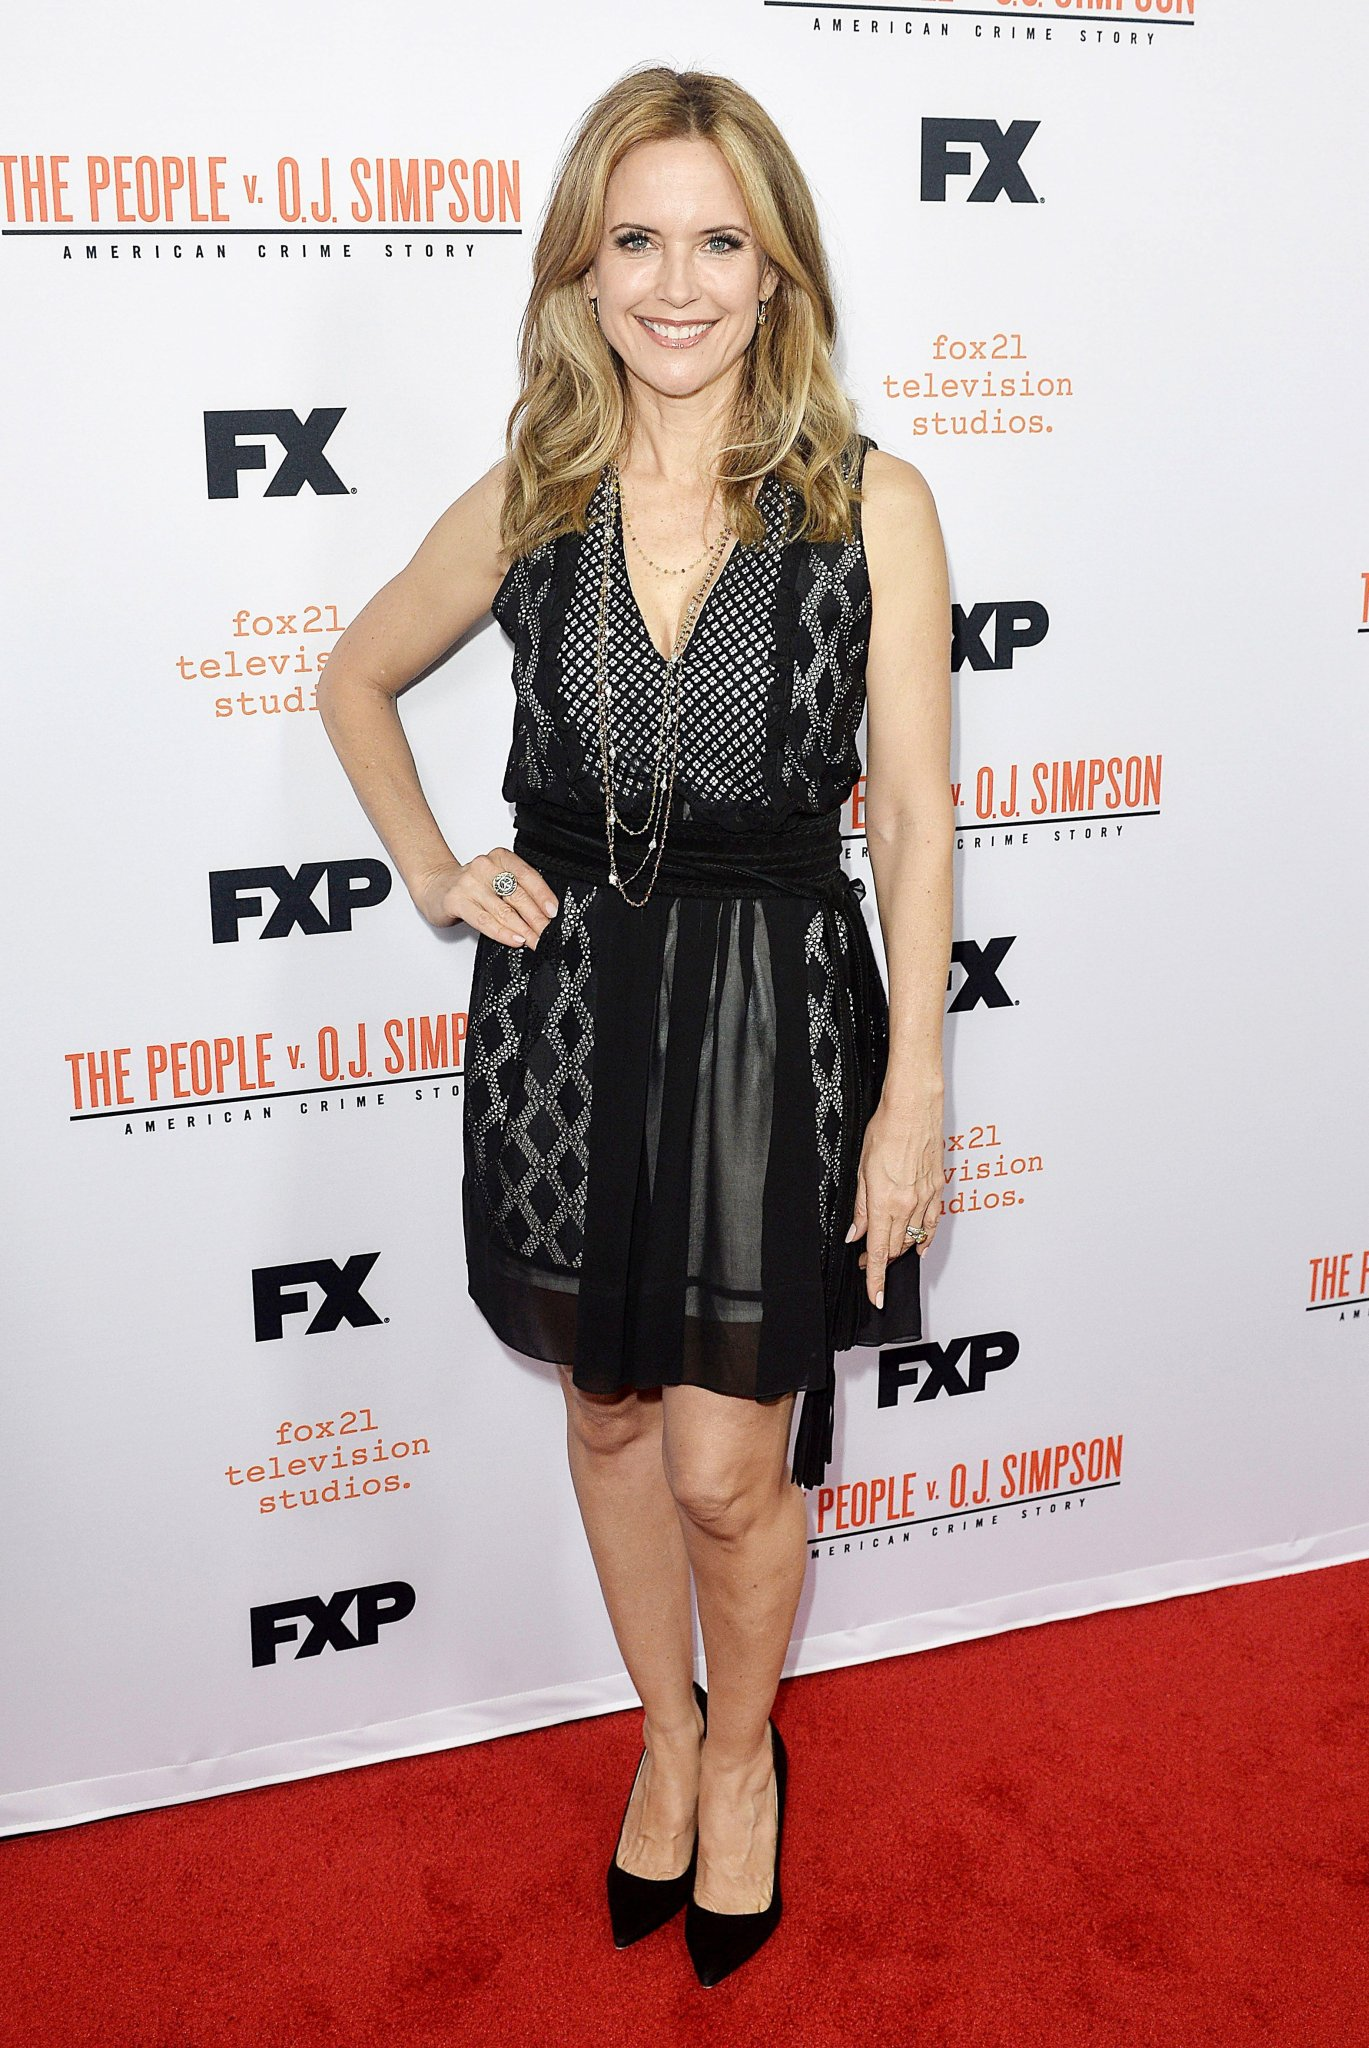 9 Things You Didn't Know About Kelly Preston - Fame10